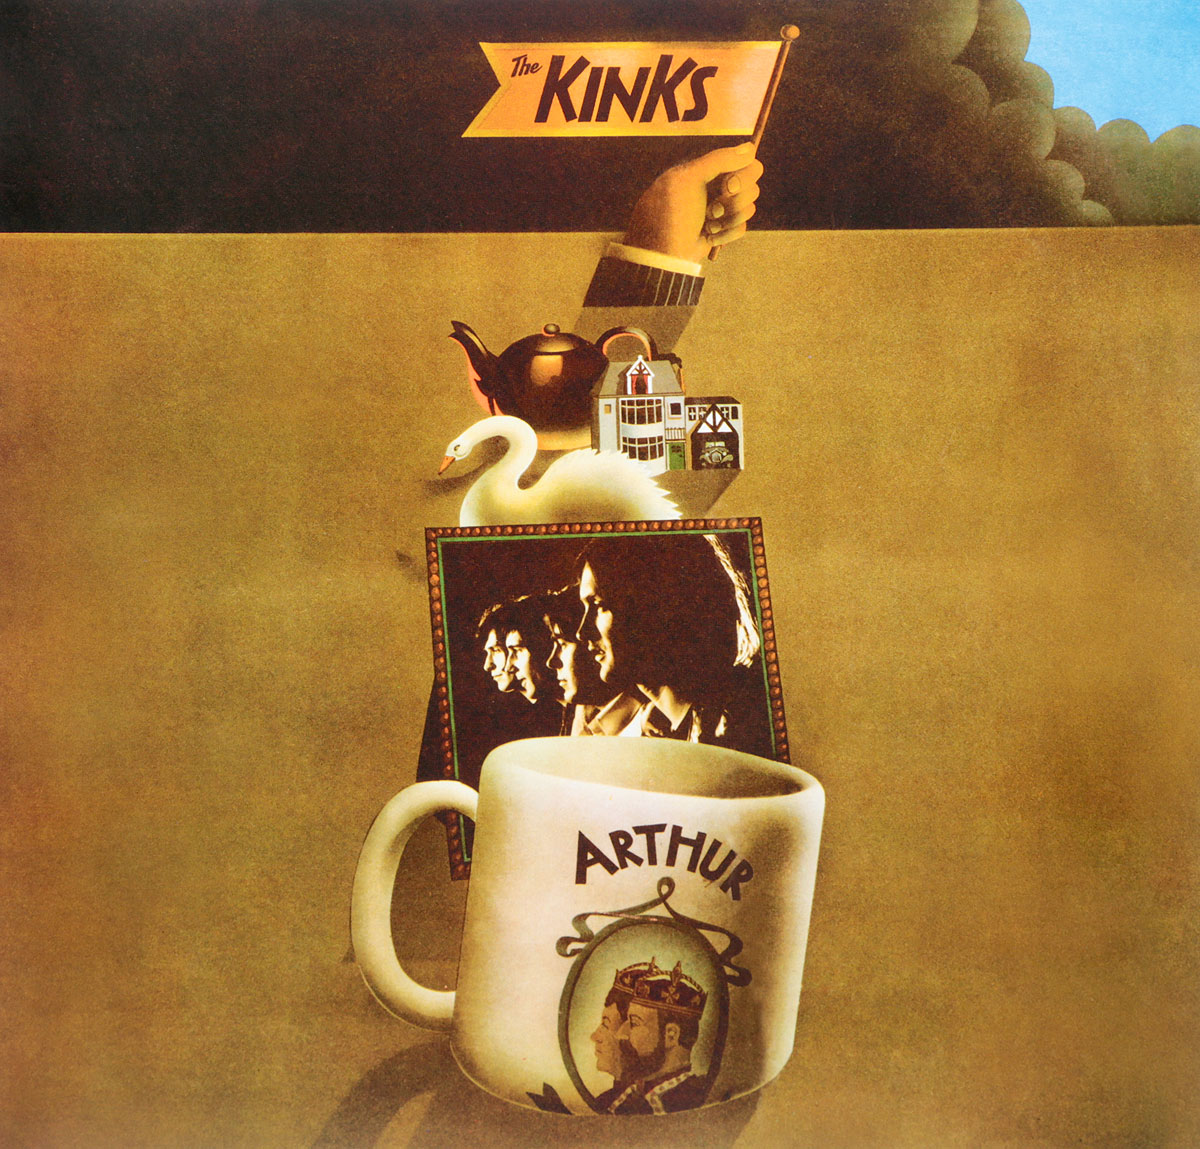 The Kinks The Kinks. Arthur Or The Decline And Fall Of The British Empire (LP) the kinks the kinks arthur or the decline and fall of the british empire lp